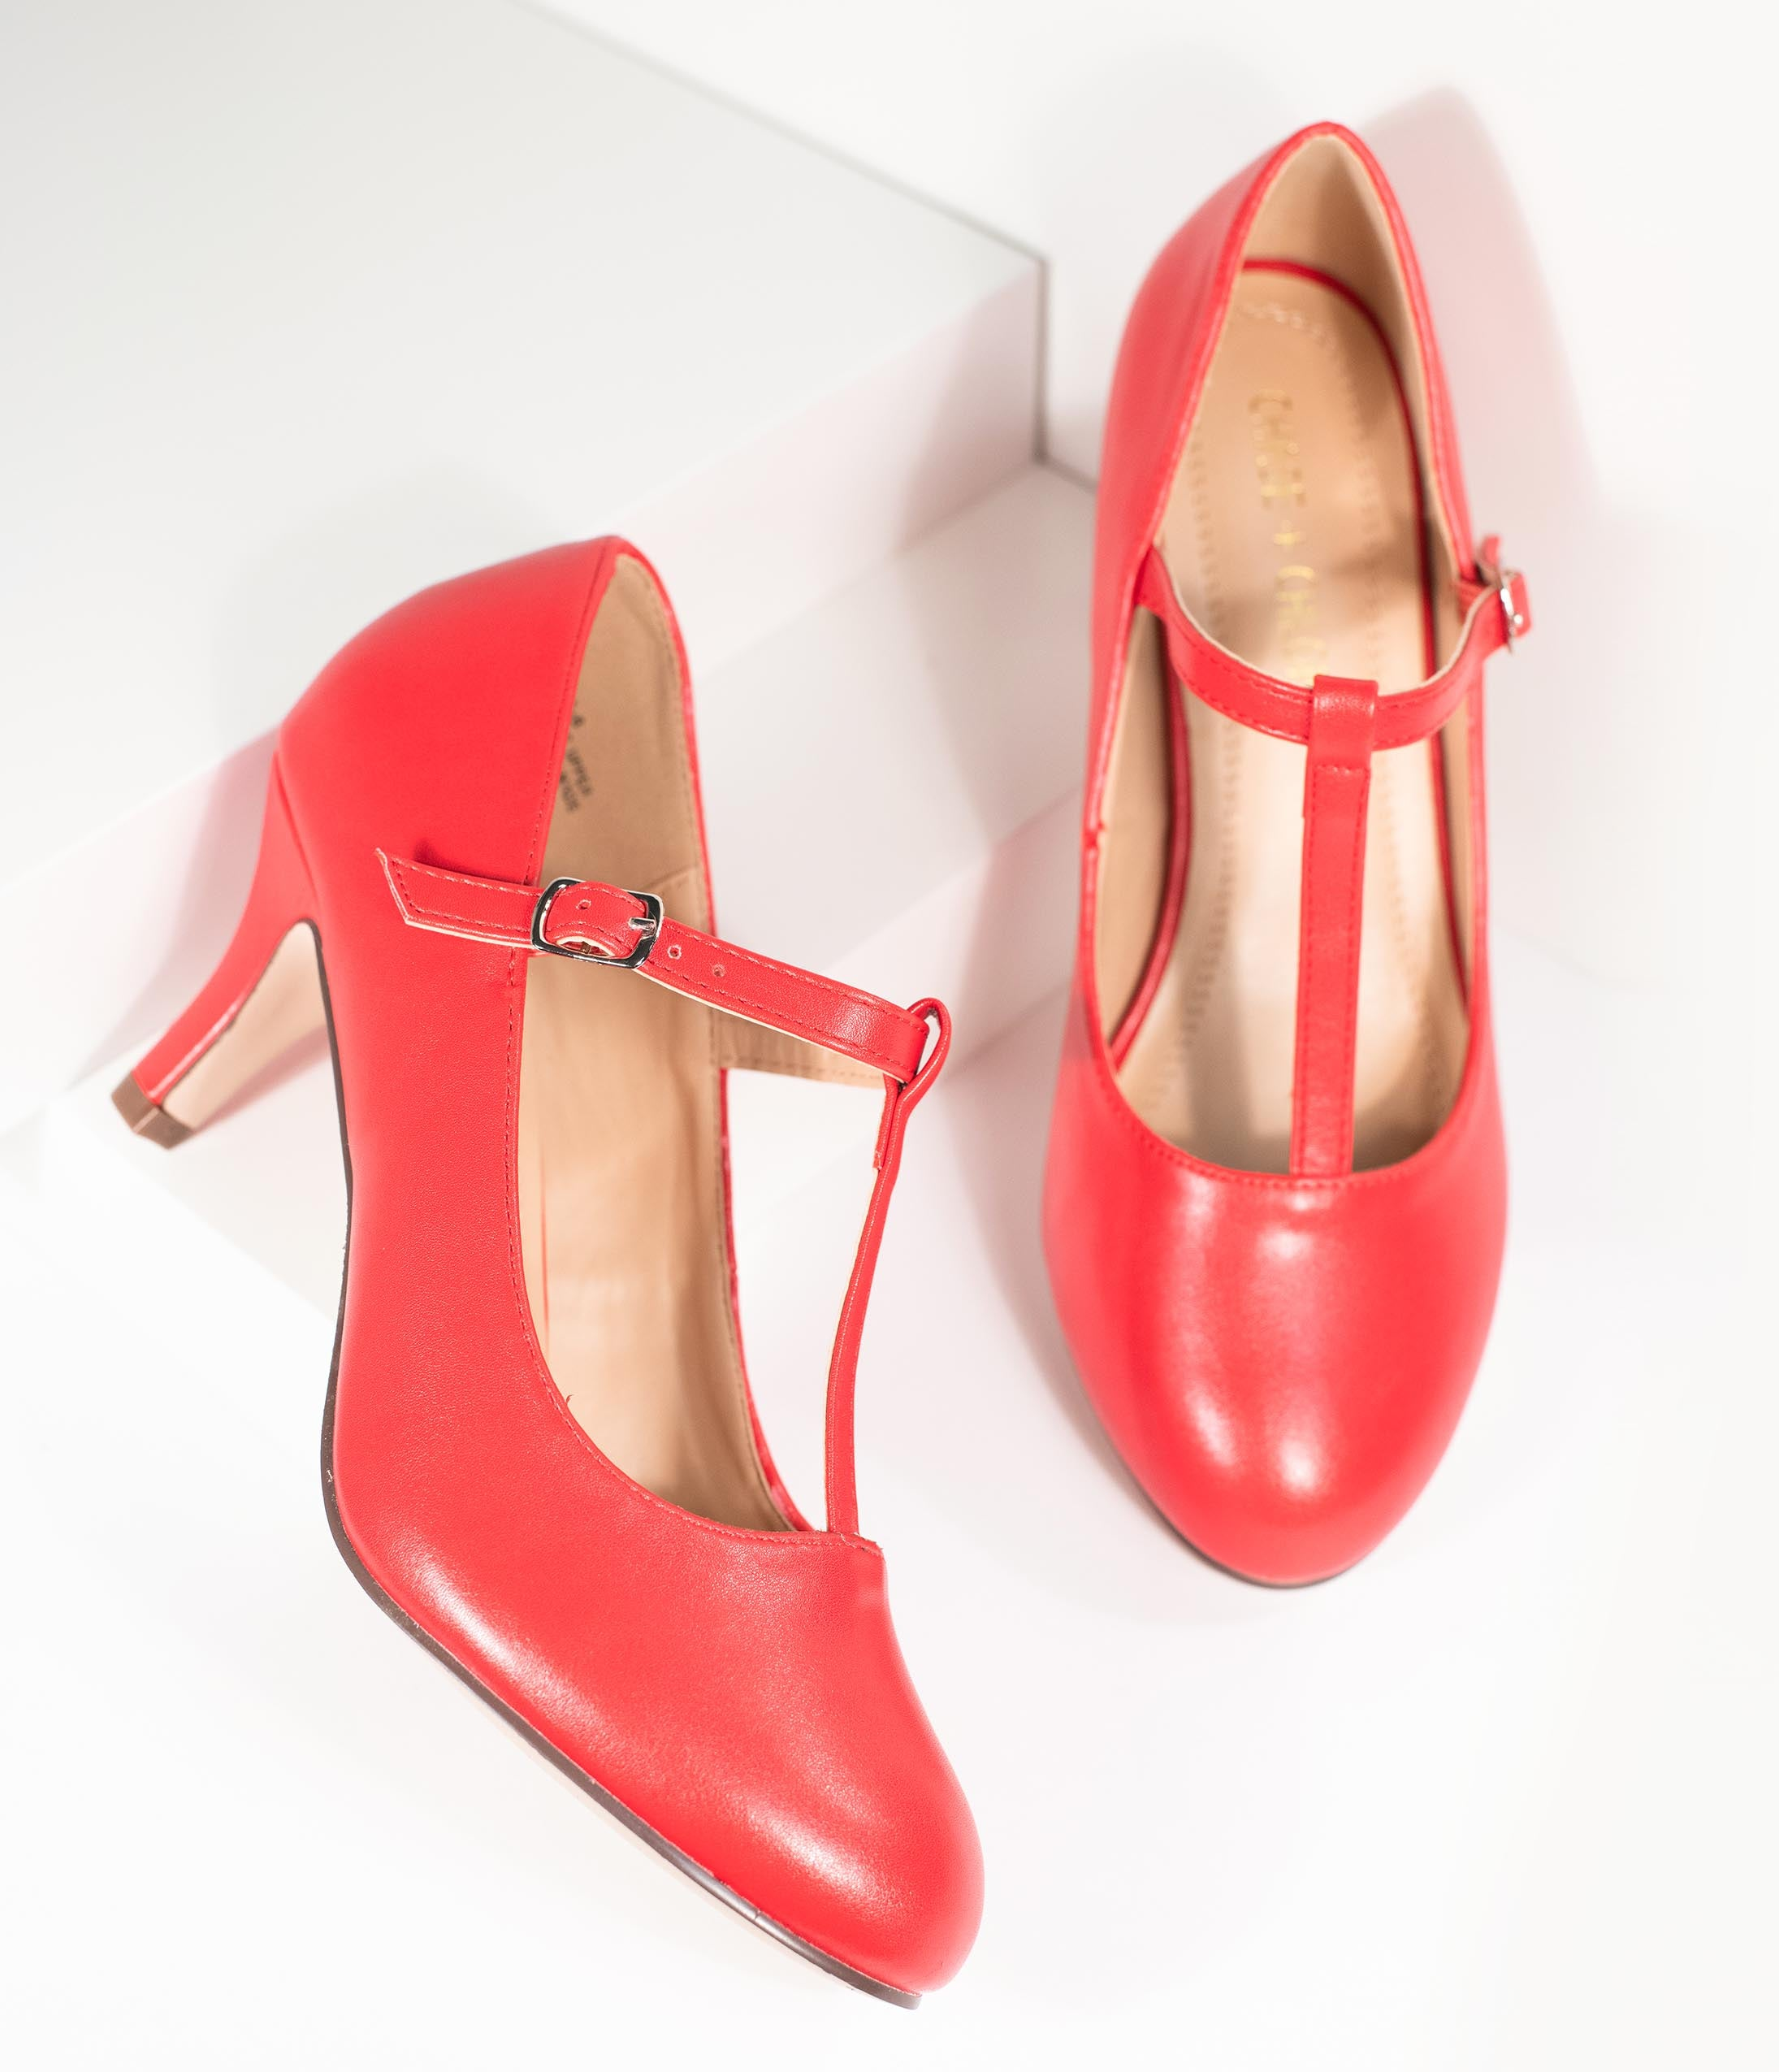 1940s Womens Footwear Vintage Style Red Leatherette T-Strap Heels $42.00 AT vintagedancer.com